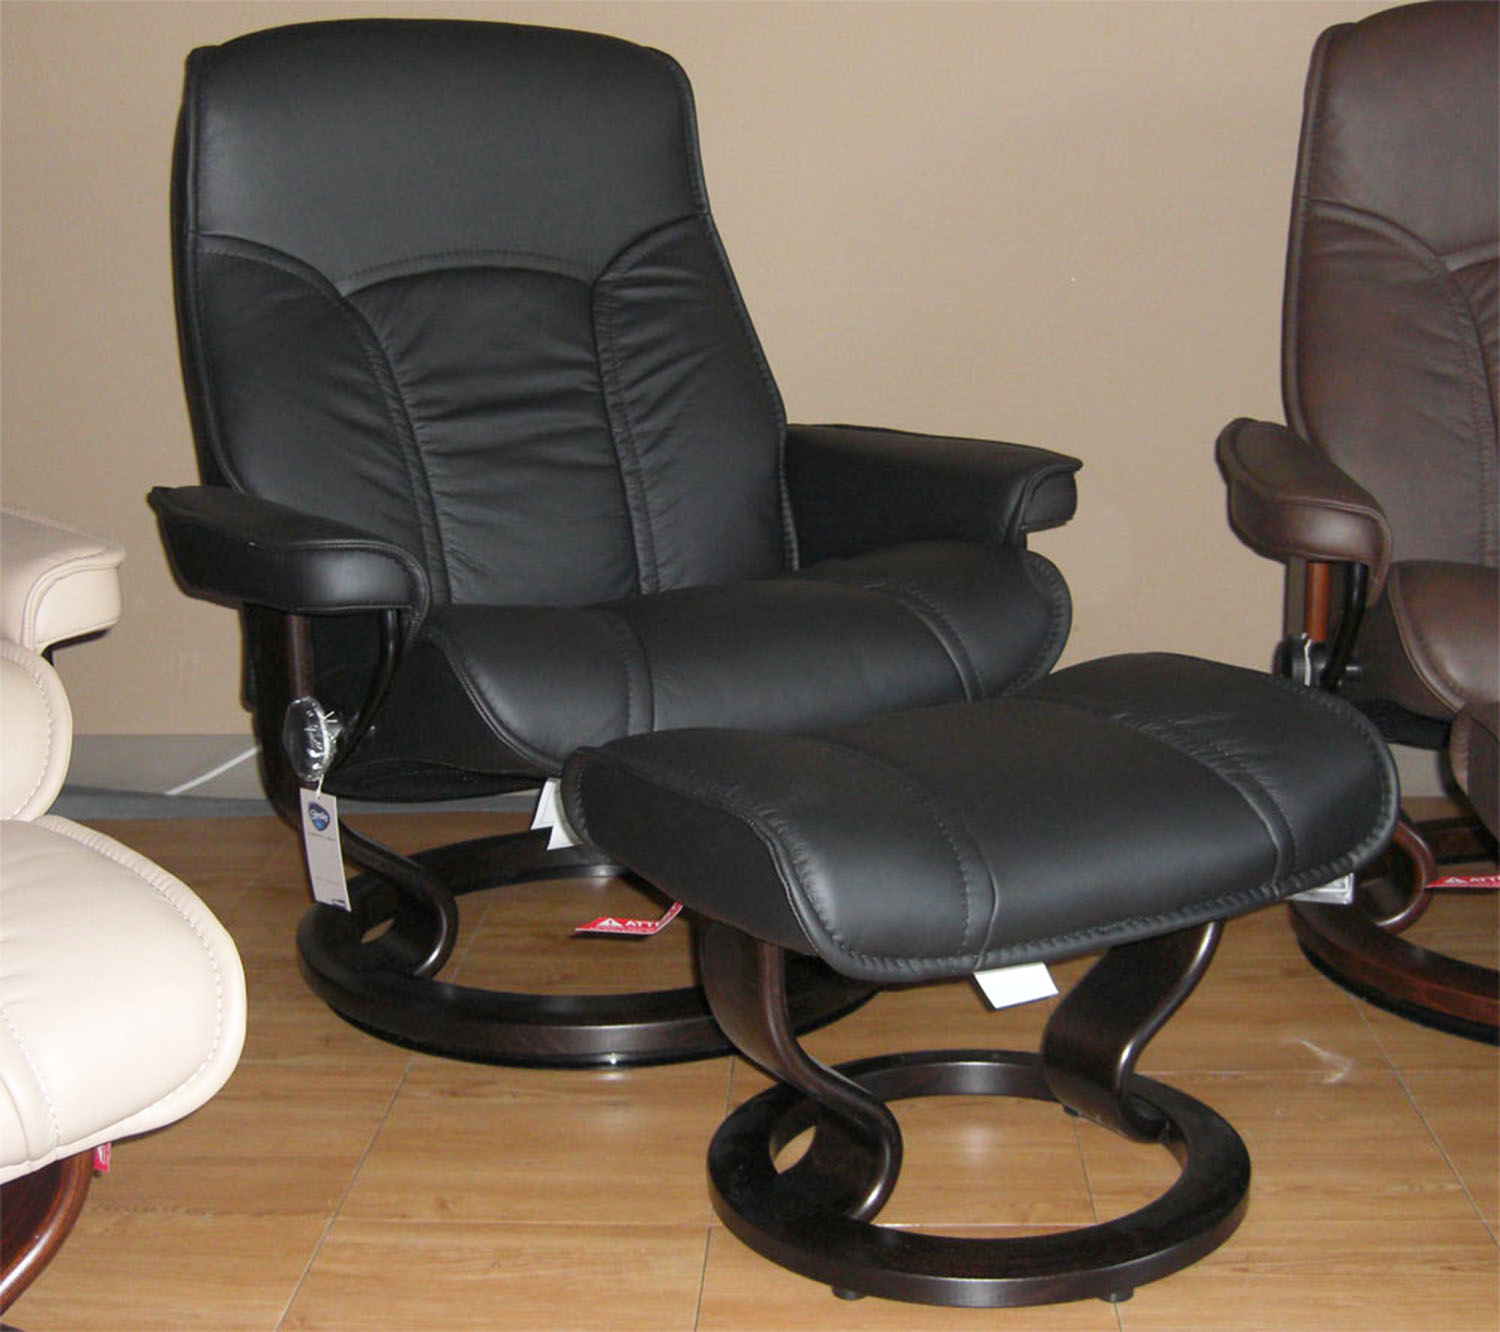 Tremendous Stressless Senator Paloma Black Leather Recliner Chair And Ottoman By Ekornes Gmtry Best Dining Table And Chair Ideas Images Gmtryco